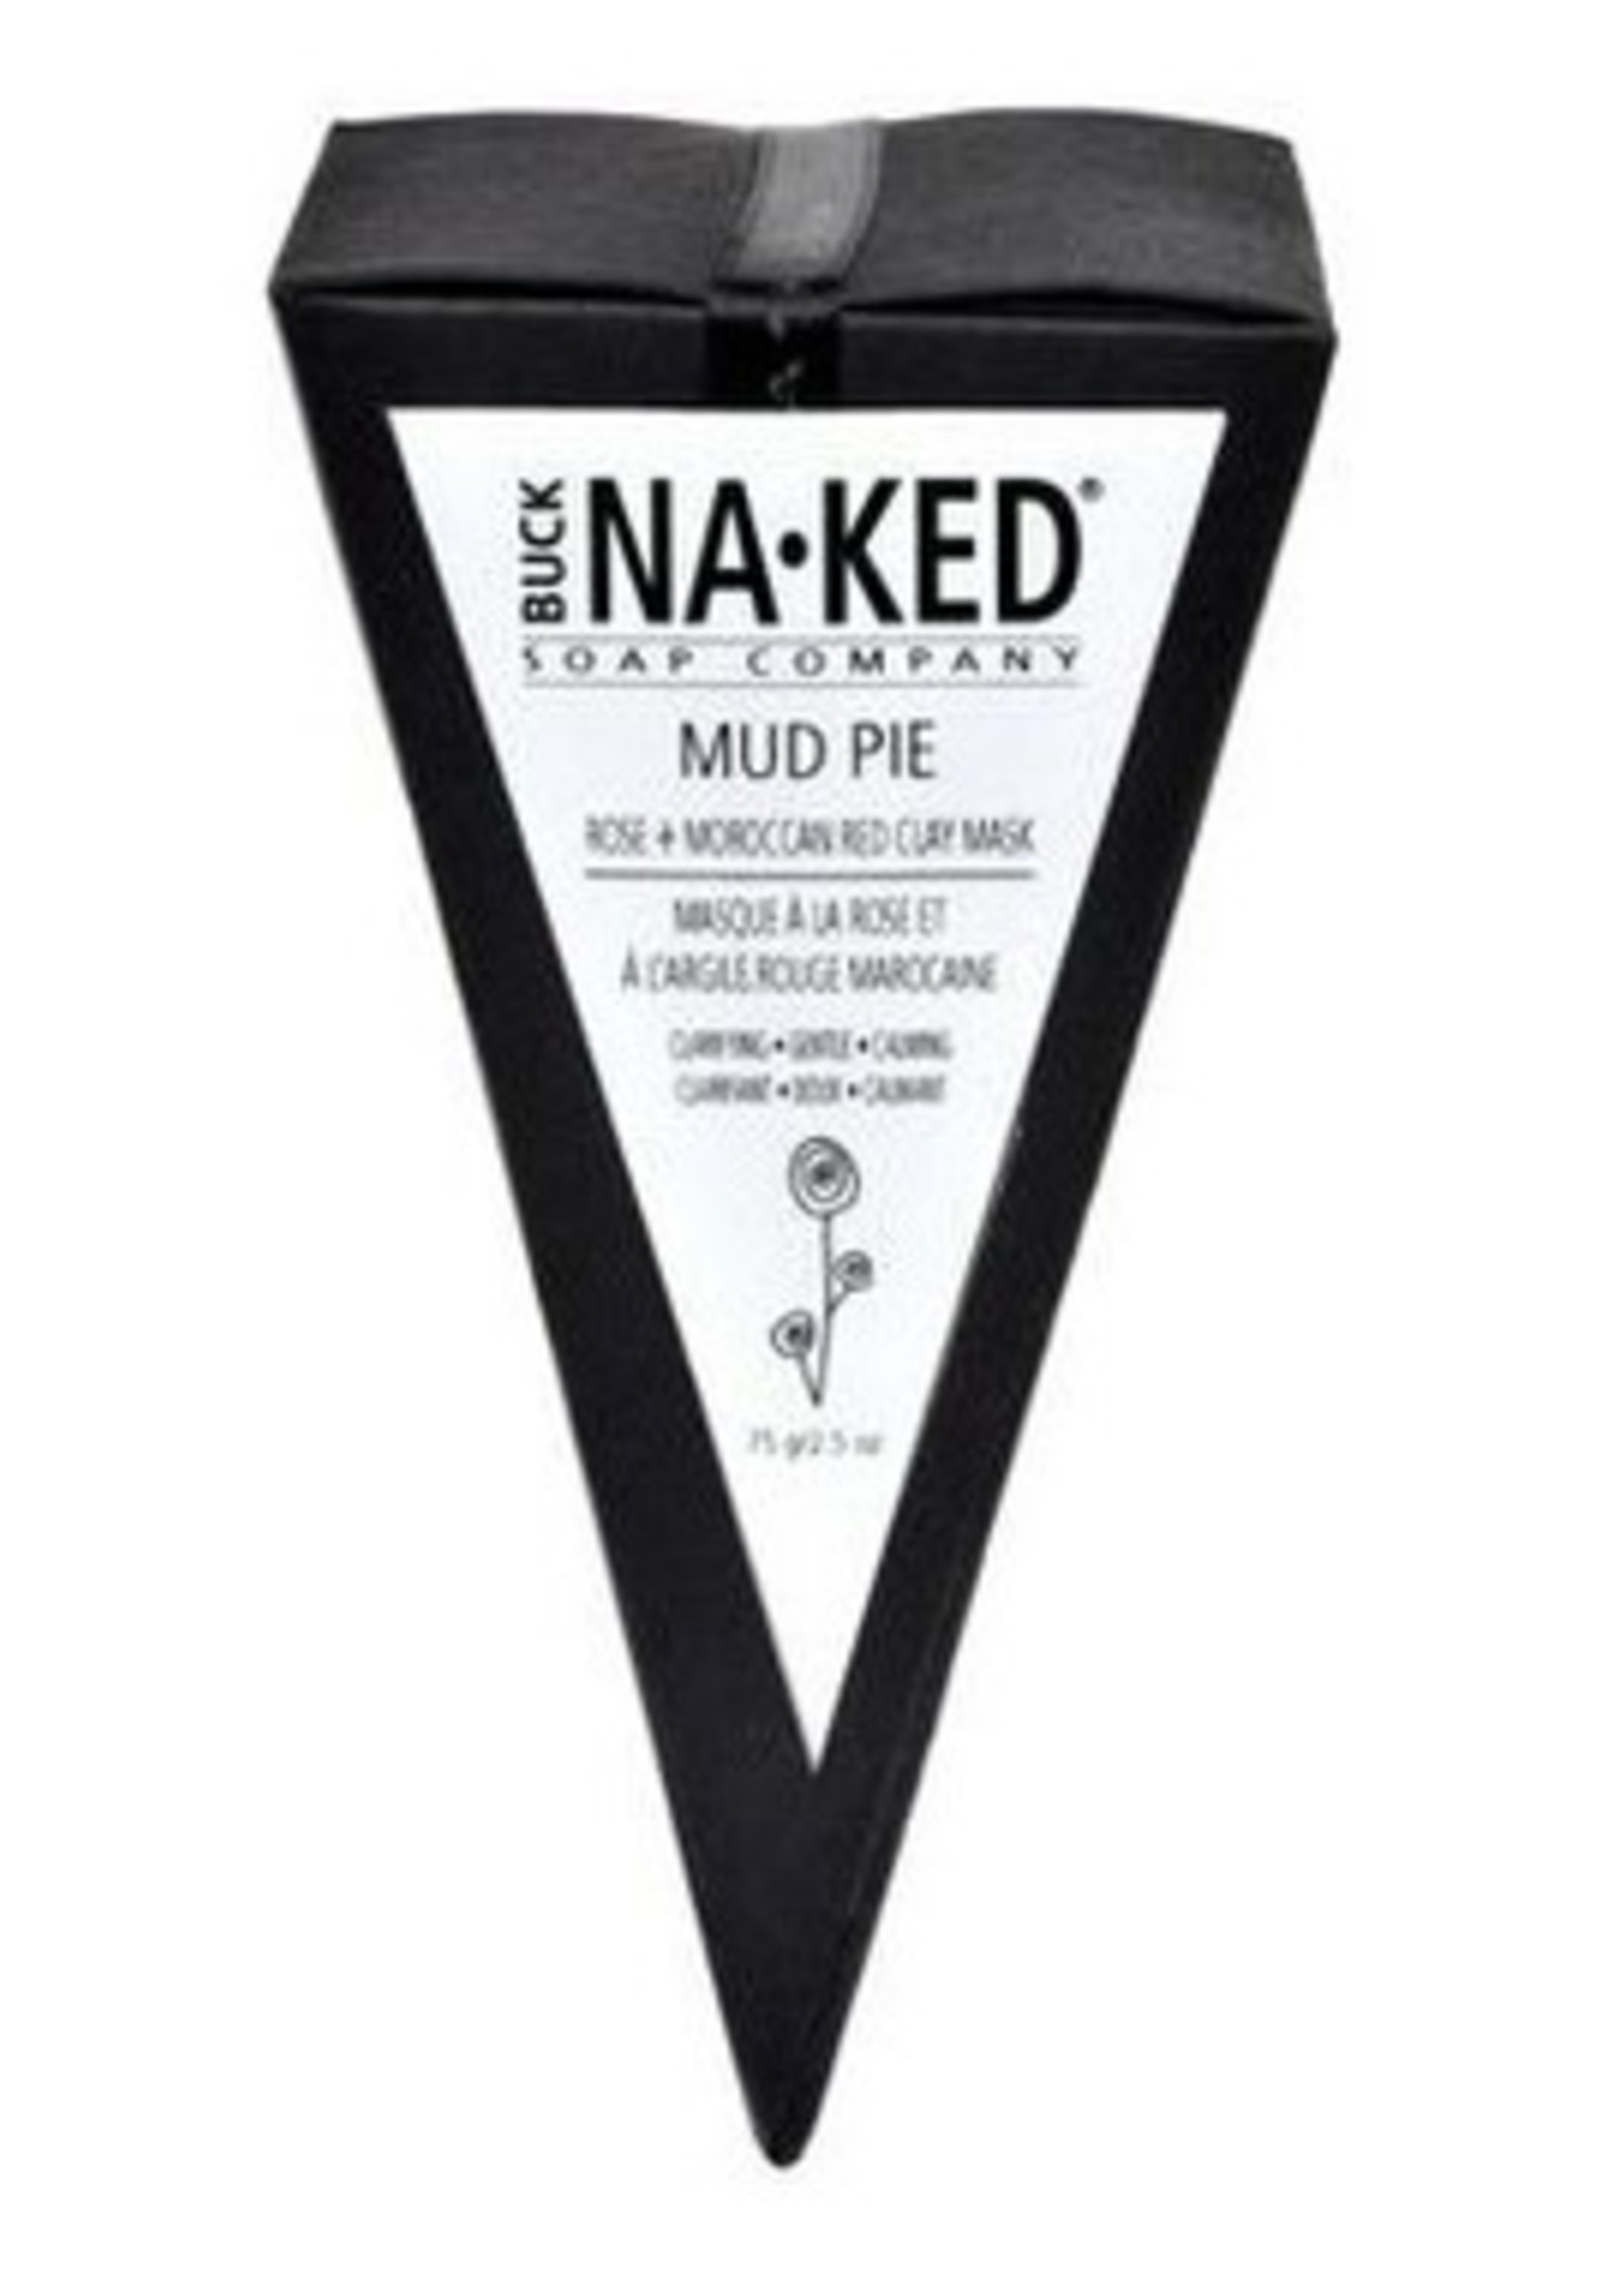 BUCK NAKED Rose & Moroccan Red CLAY MUD PIE